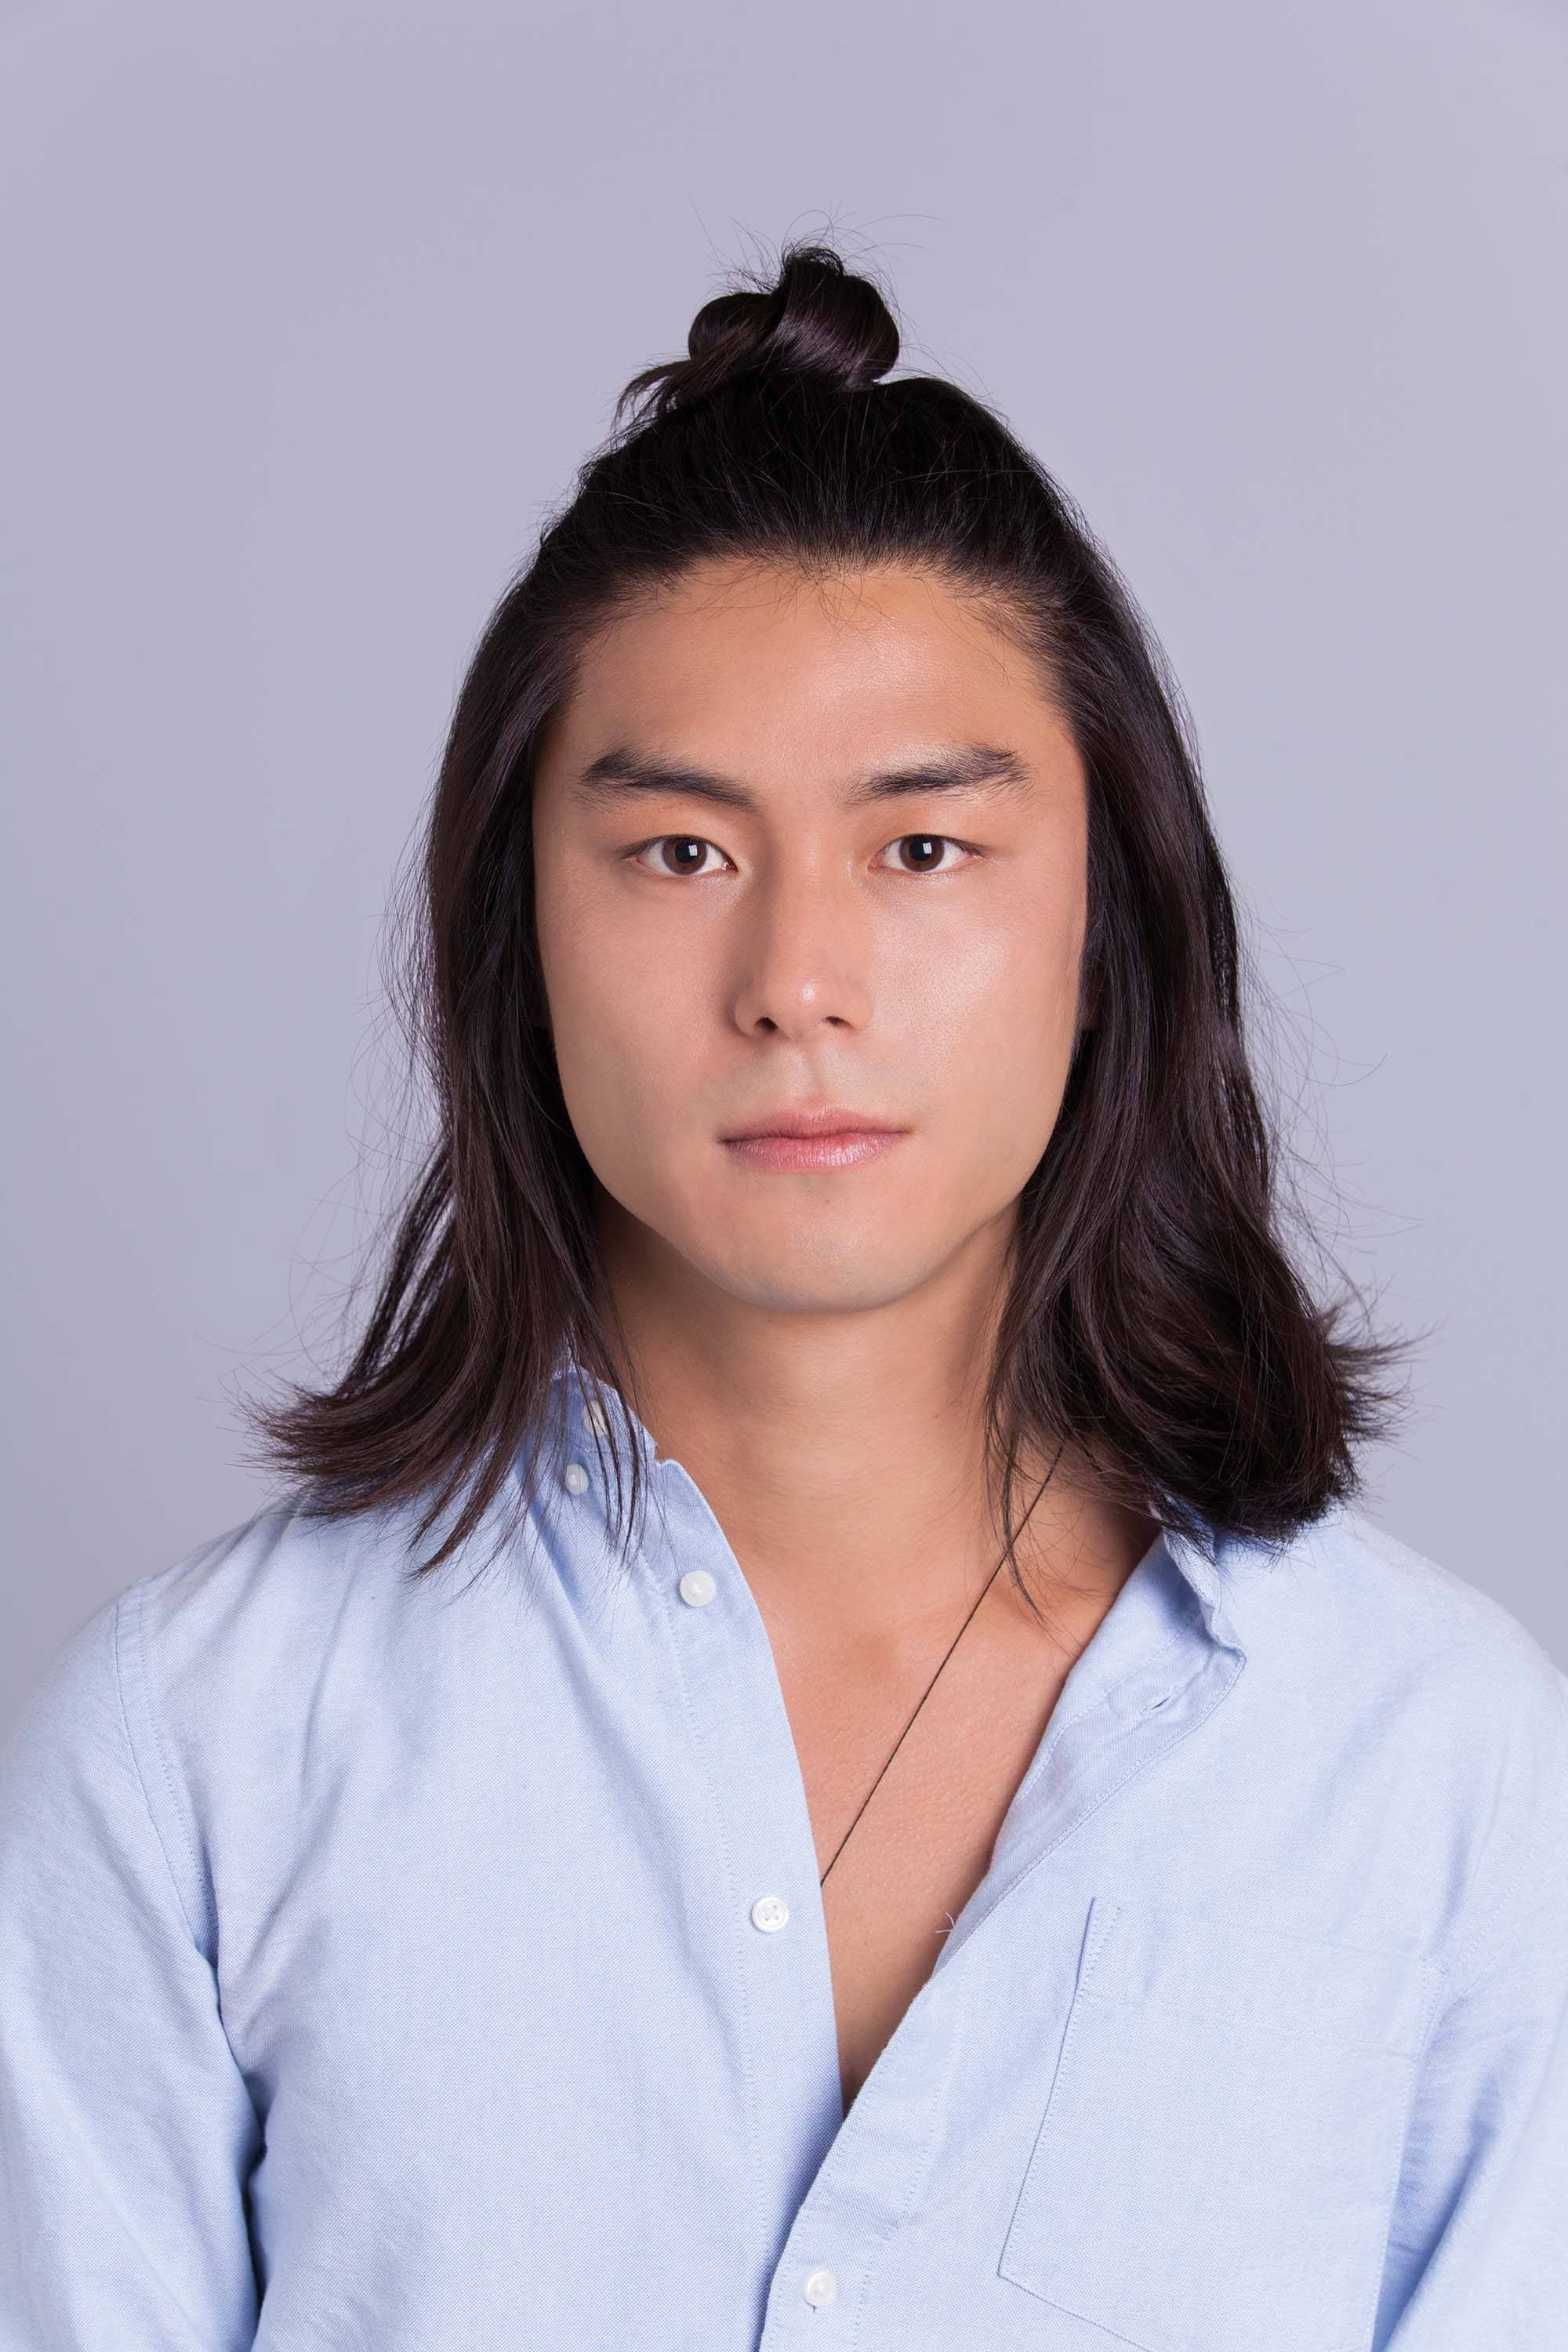 Asian man bun: Asian male model with shoulder-length hair with the final half-up man bun